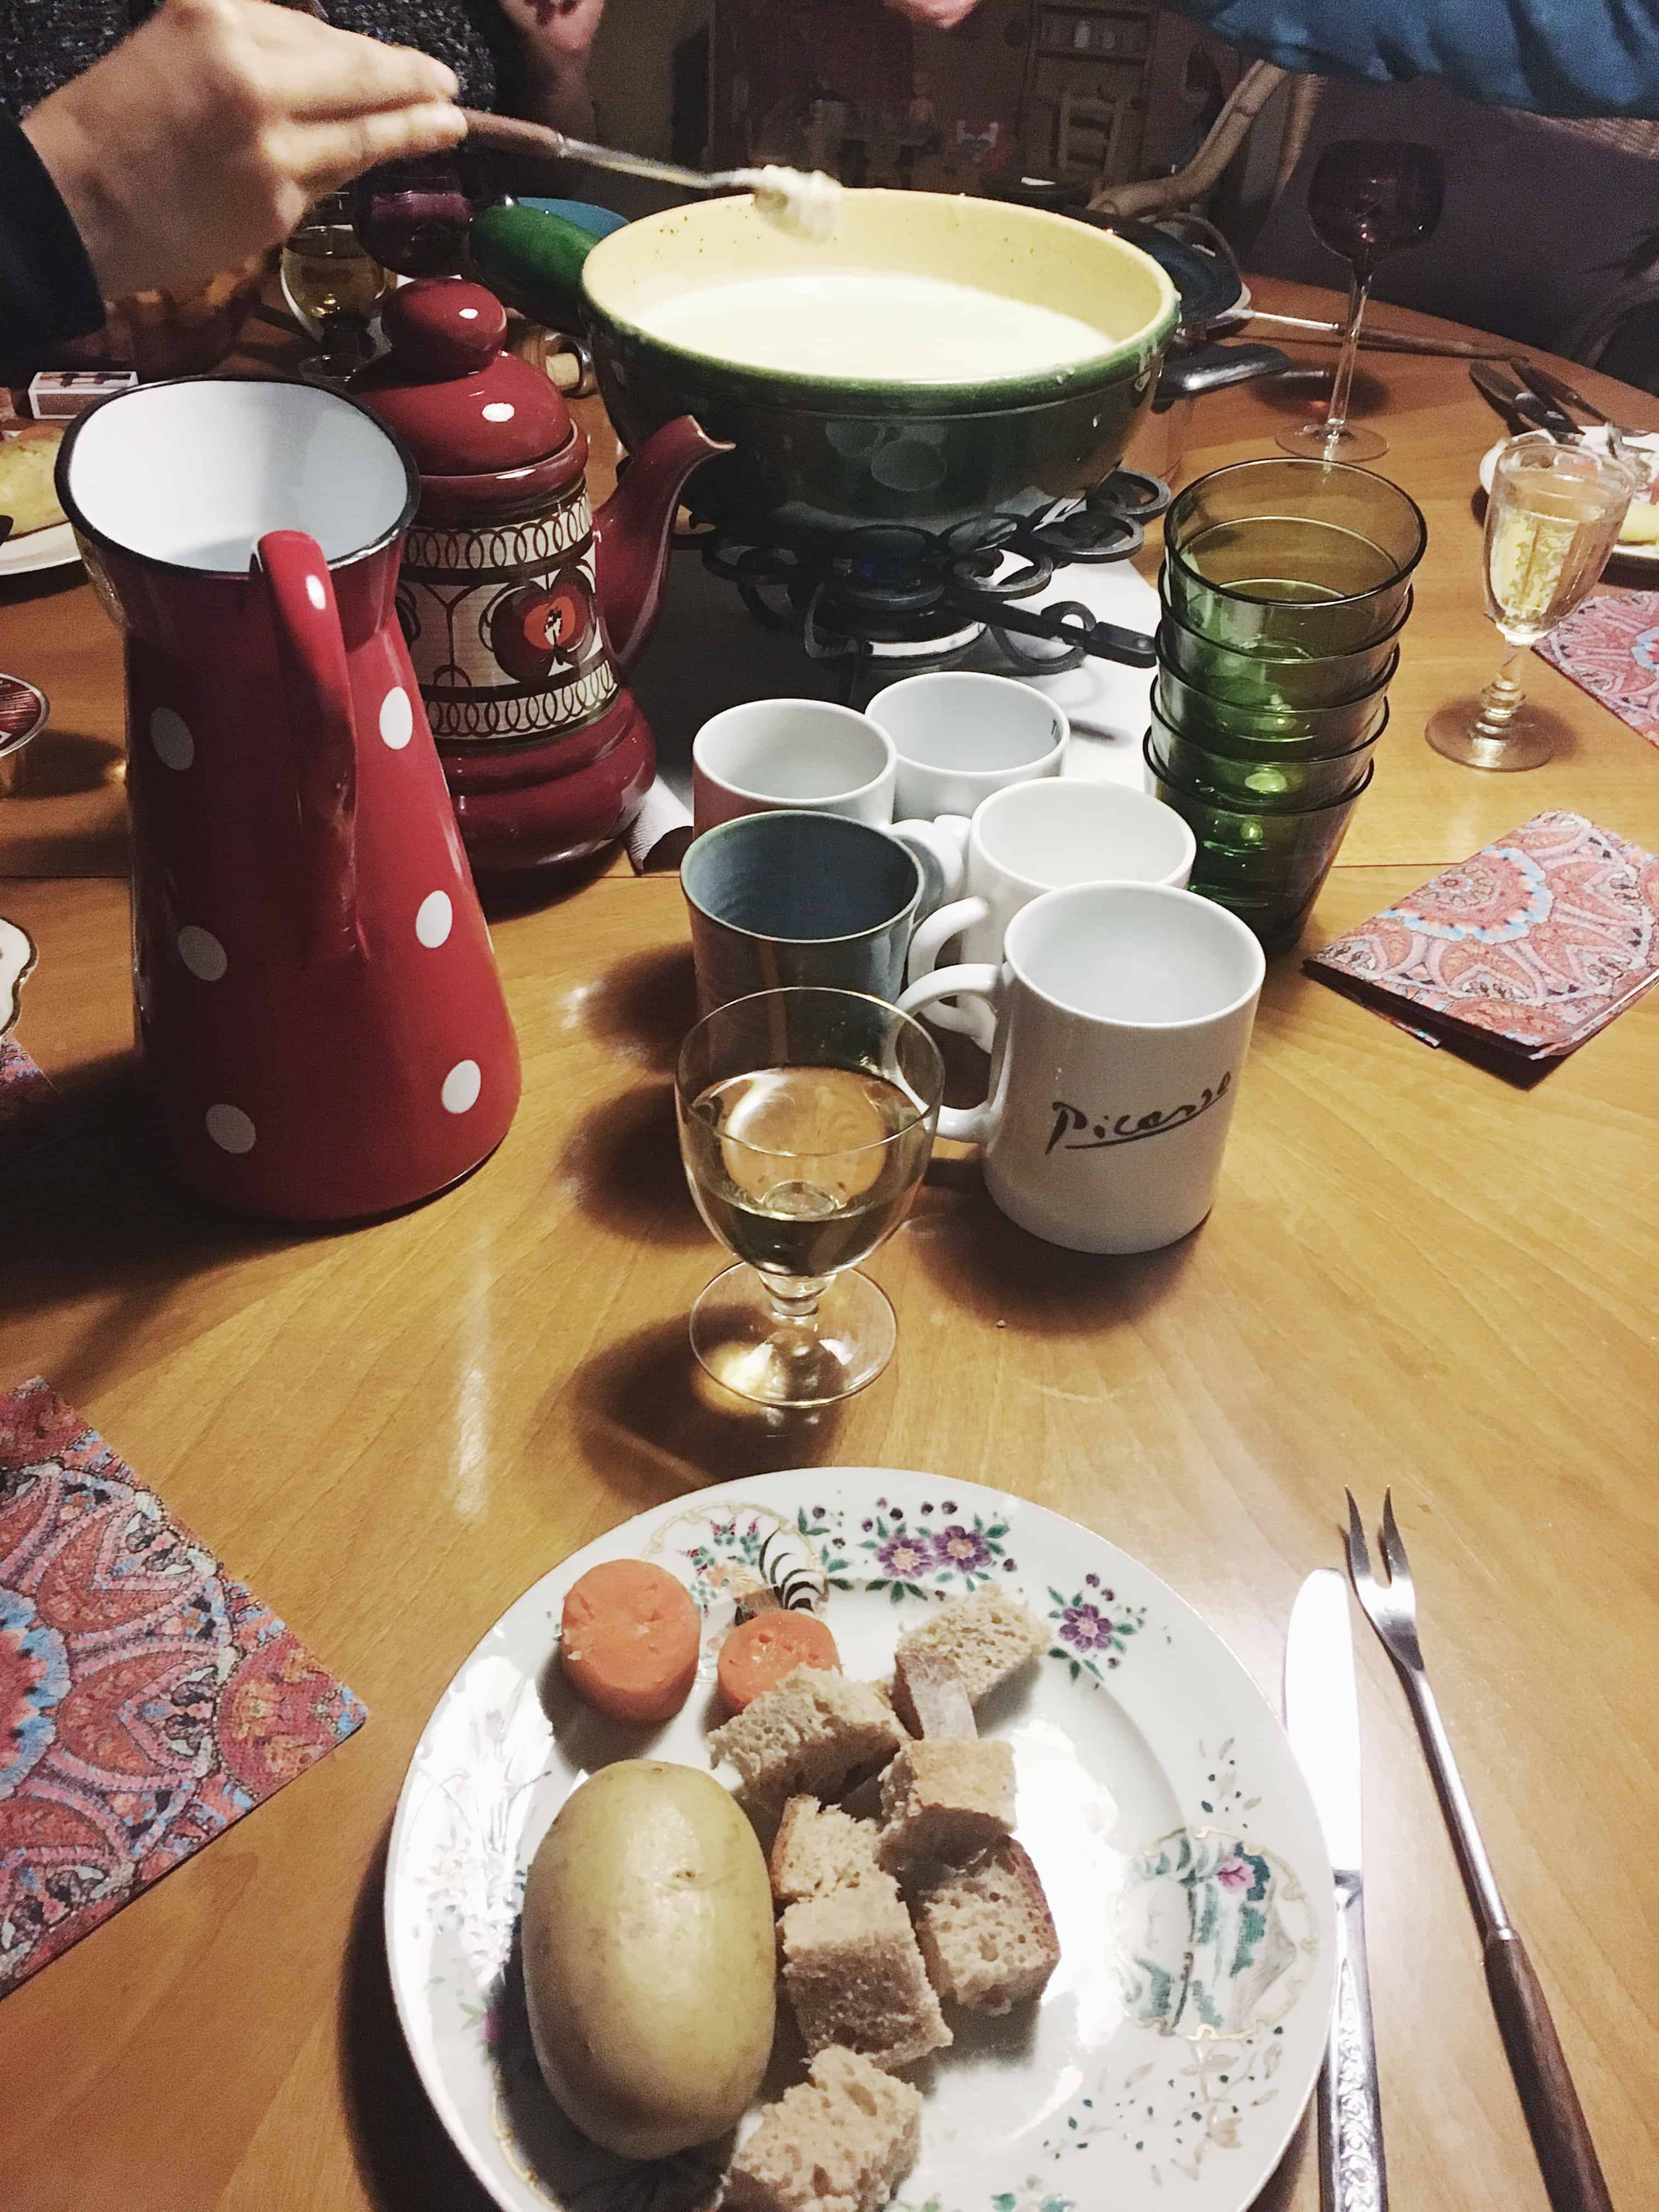 Traditional Swiss Fondue is made of cheese and eaten with bread, boiled carrots, and potatoes - try it in Switzerland!